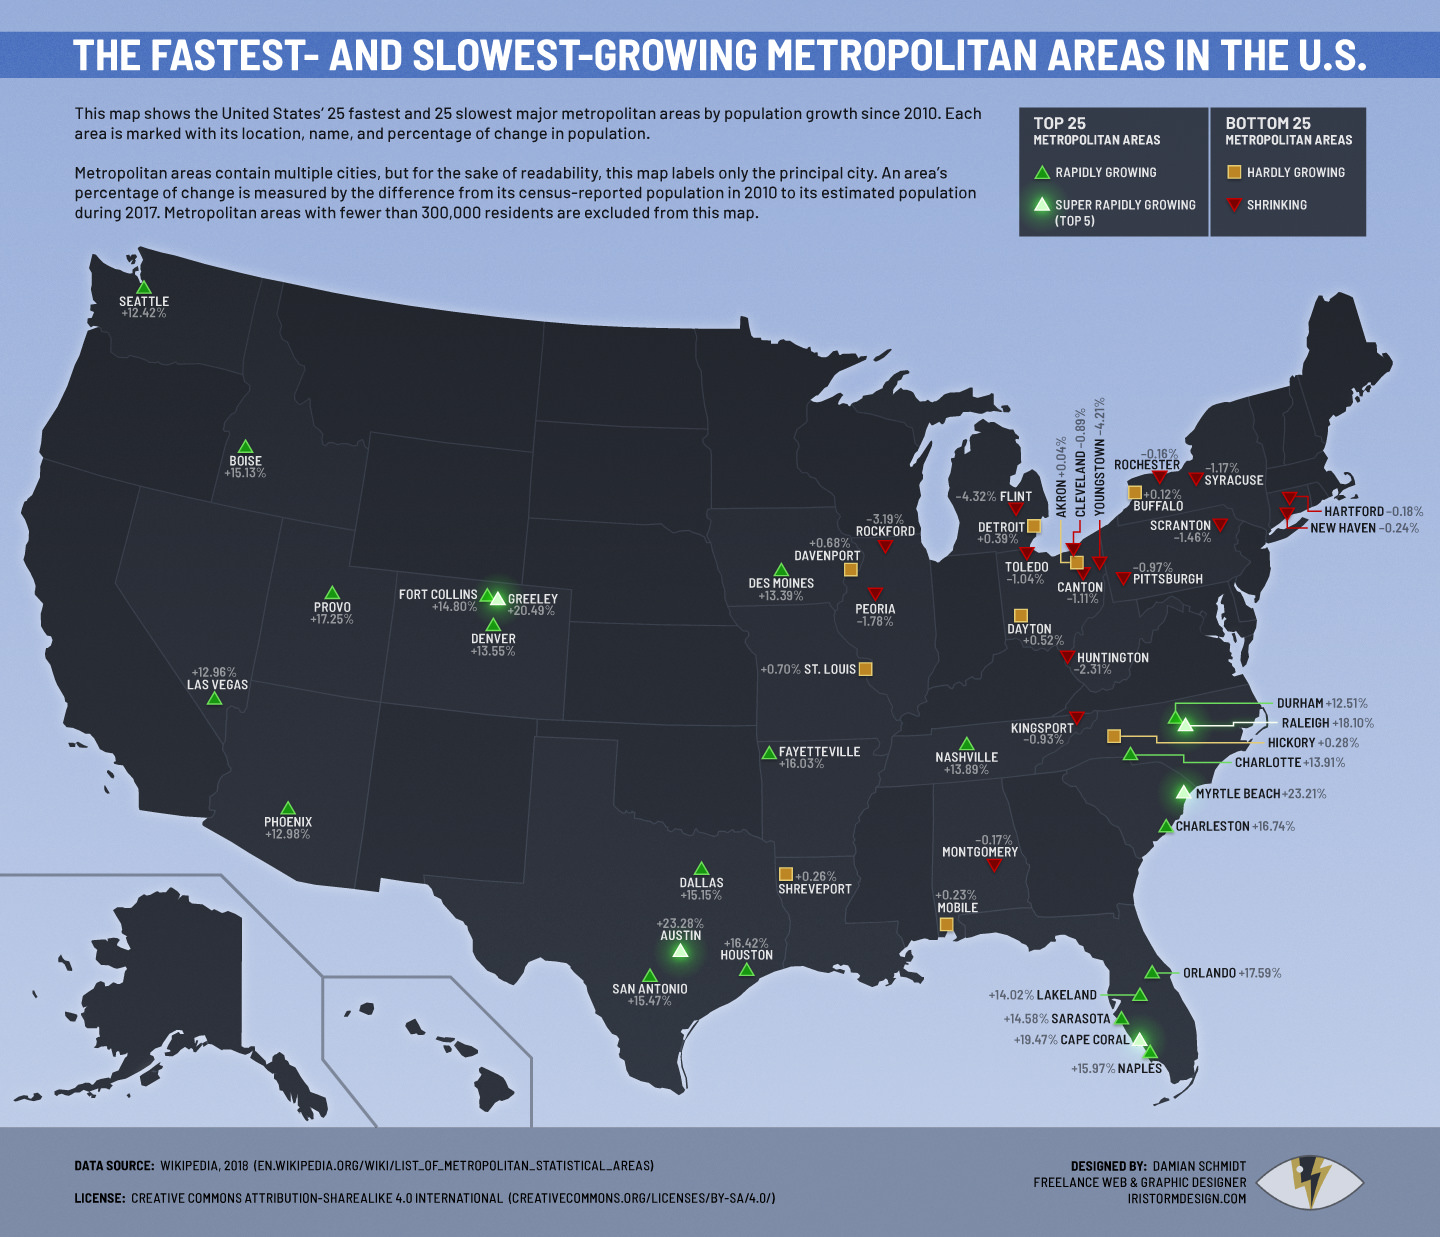 The Fastest- and Slowest-Growing Metropolitan Areas in the United States